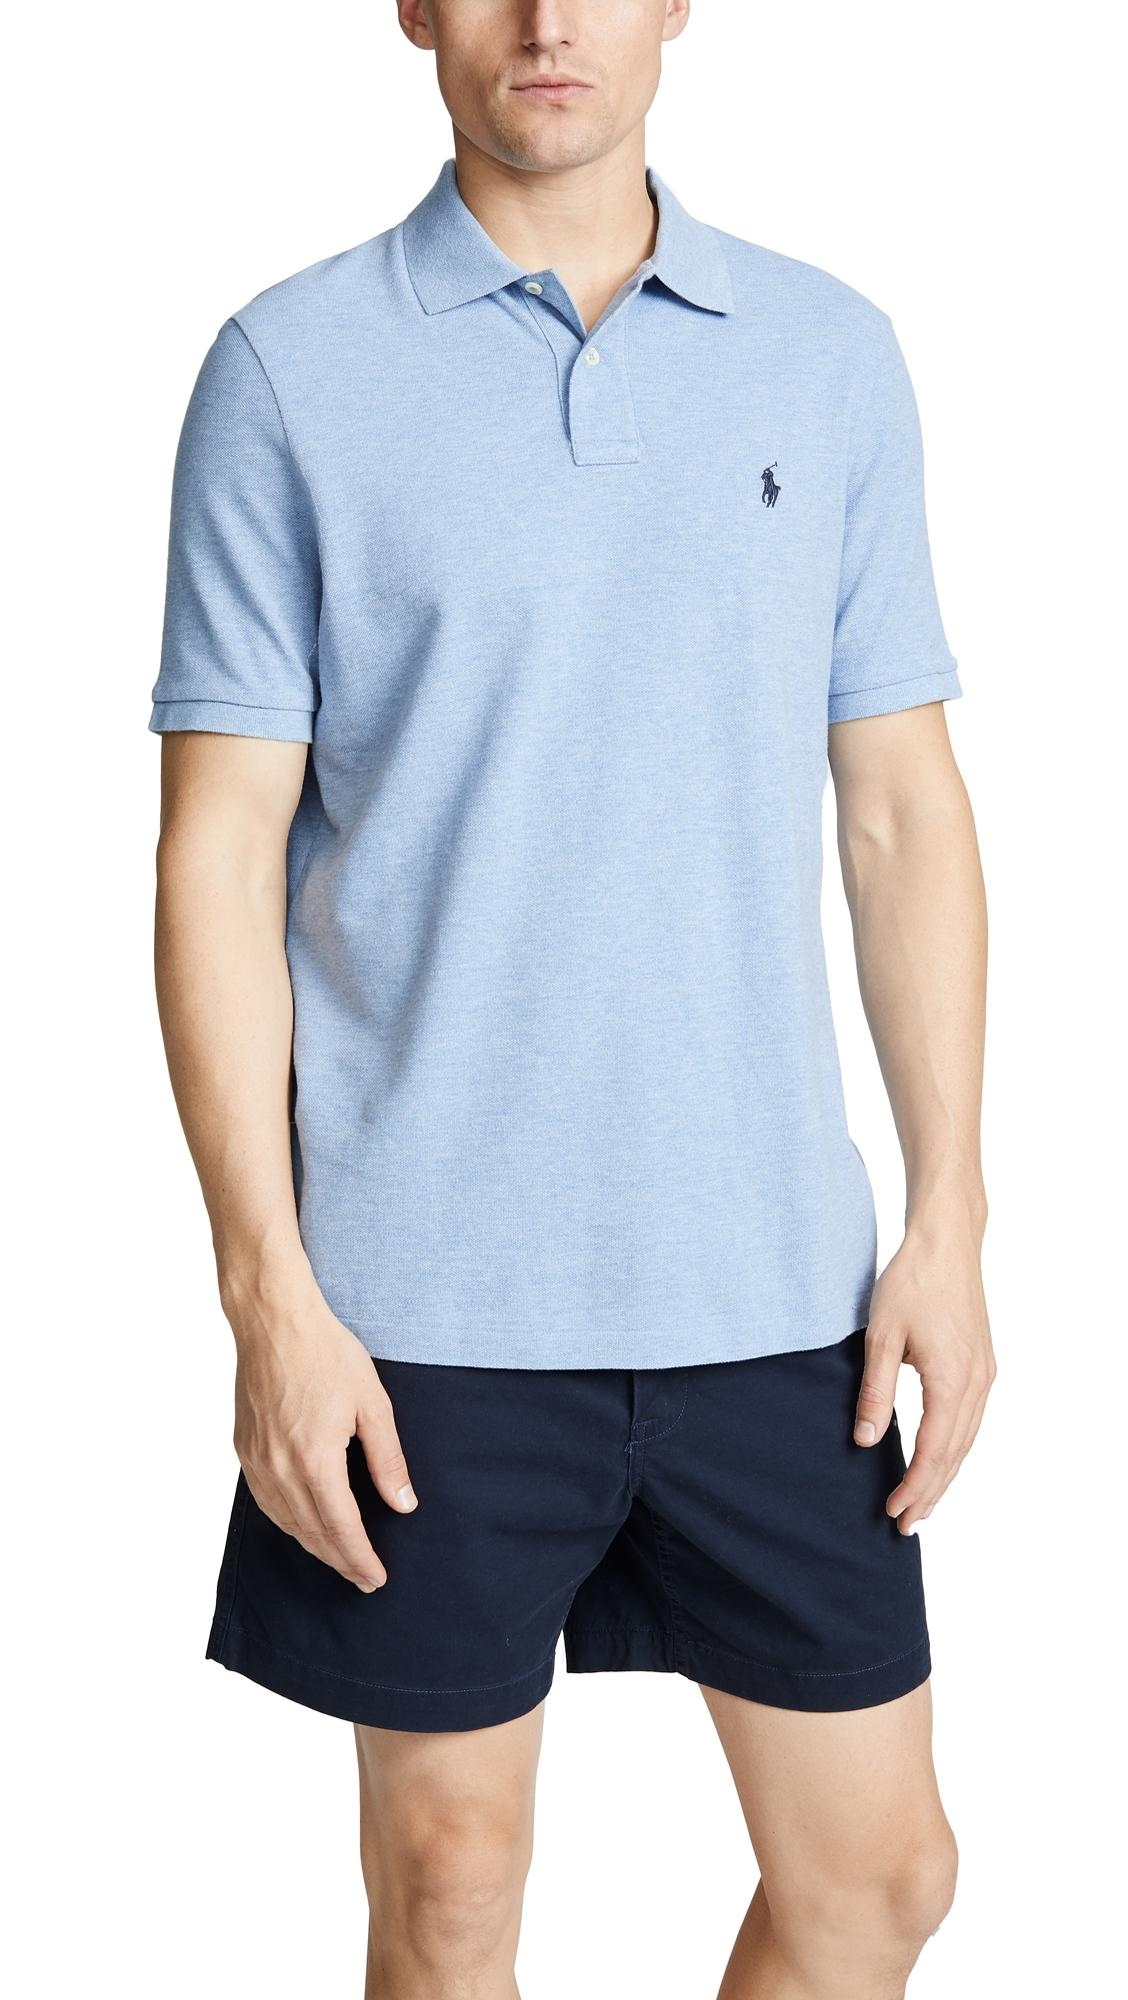 Fit New Heather Classic Shirt Jamaica In Polo MpSUzV